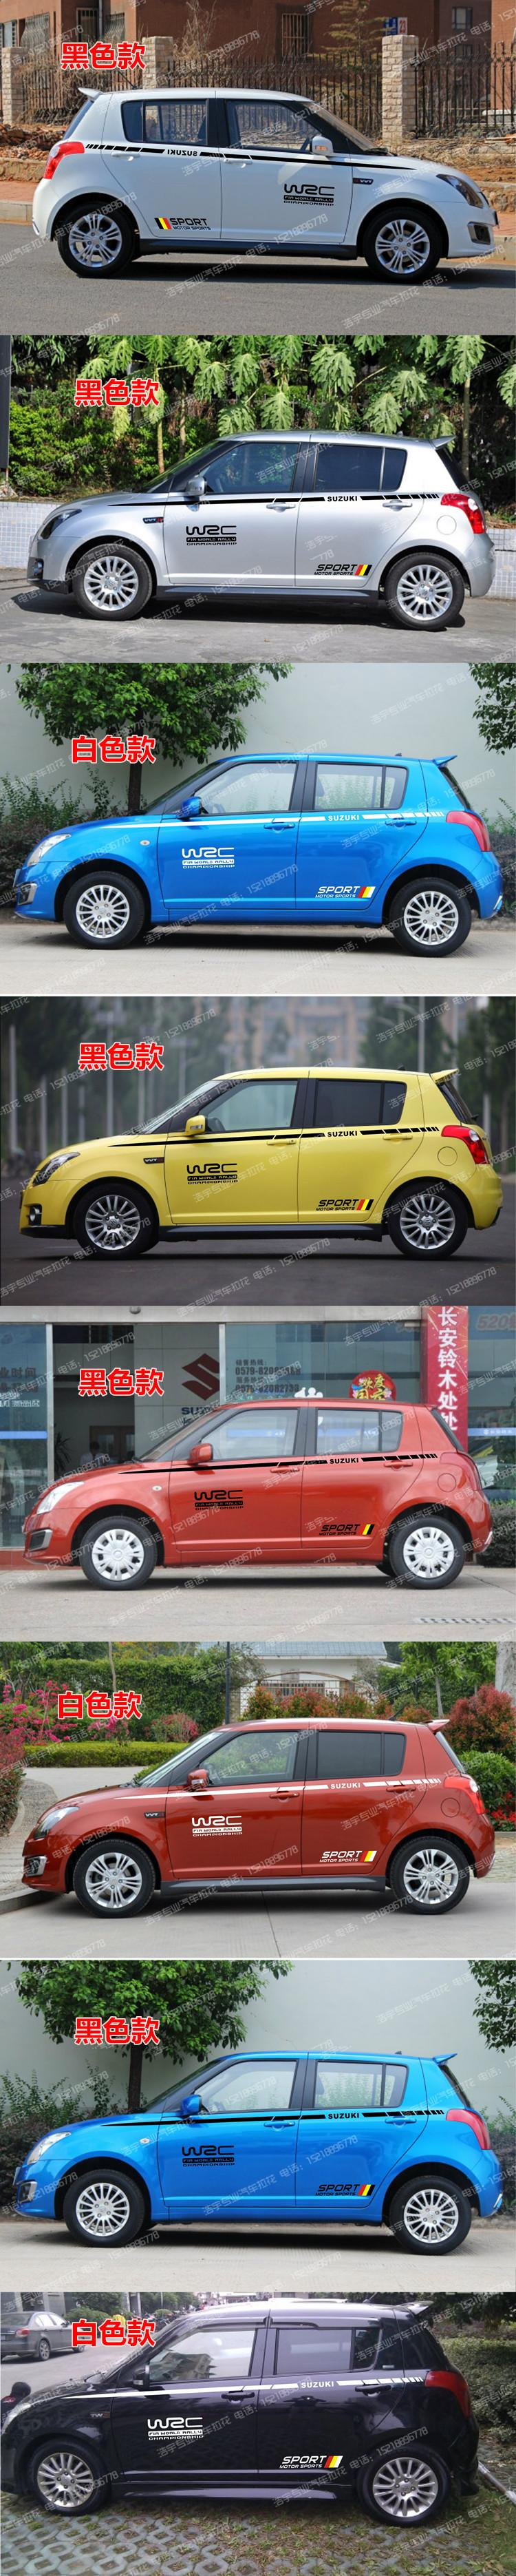 Car sticker design for swift - Model Default Model Suzuki Swift In Fig Other Car Custom Car Stickers Contact The Store